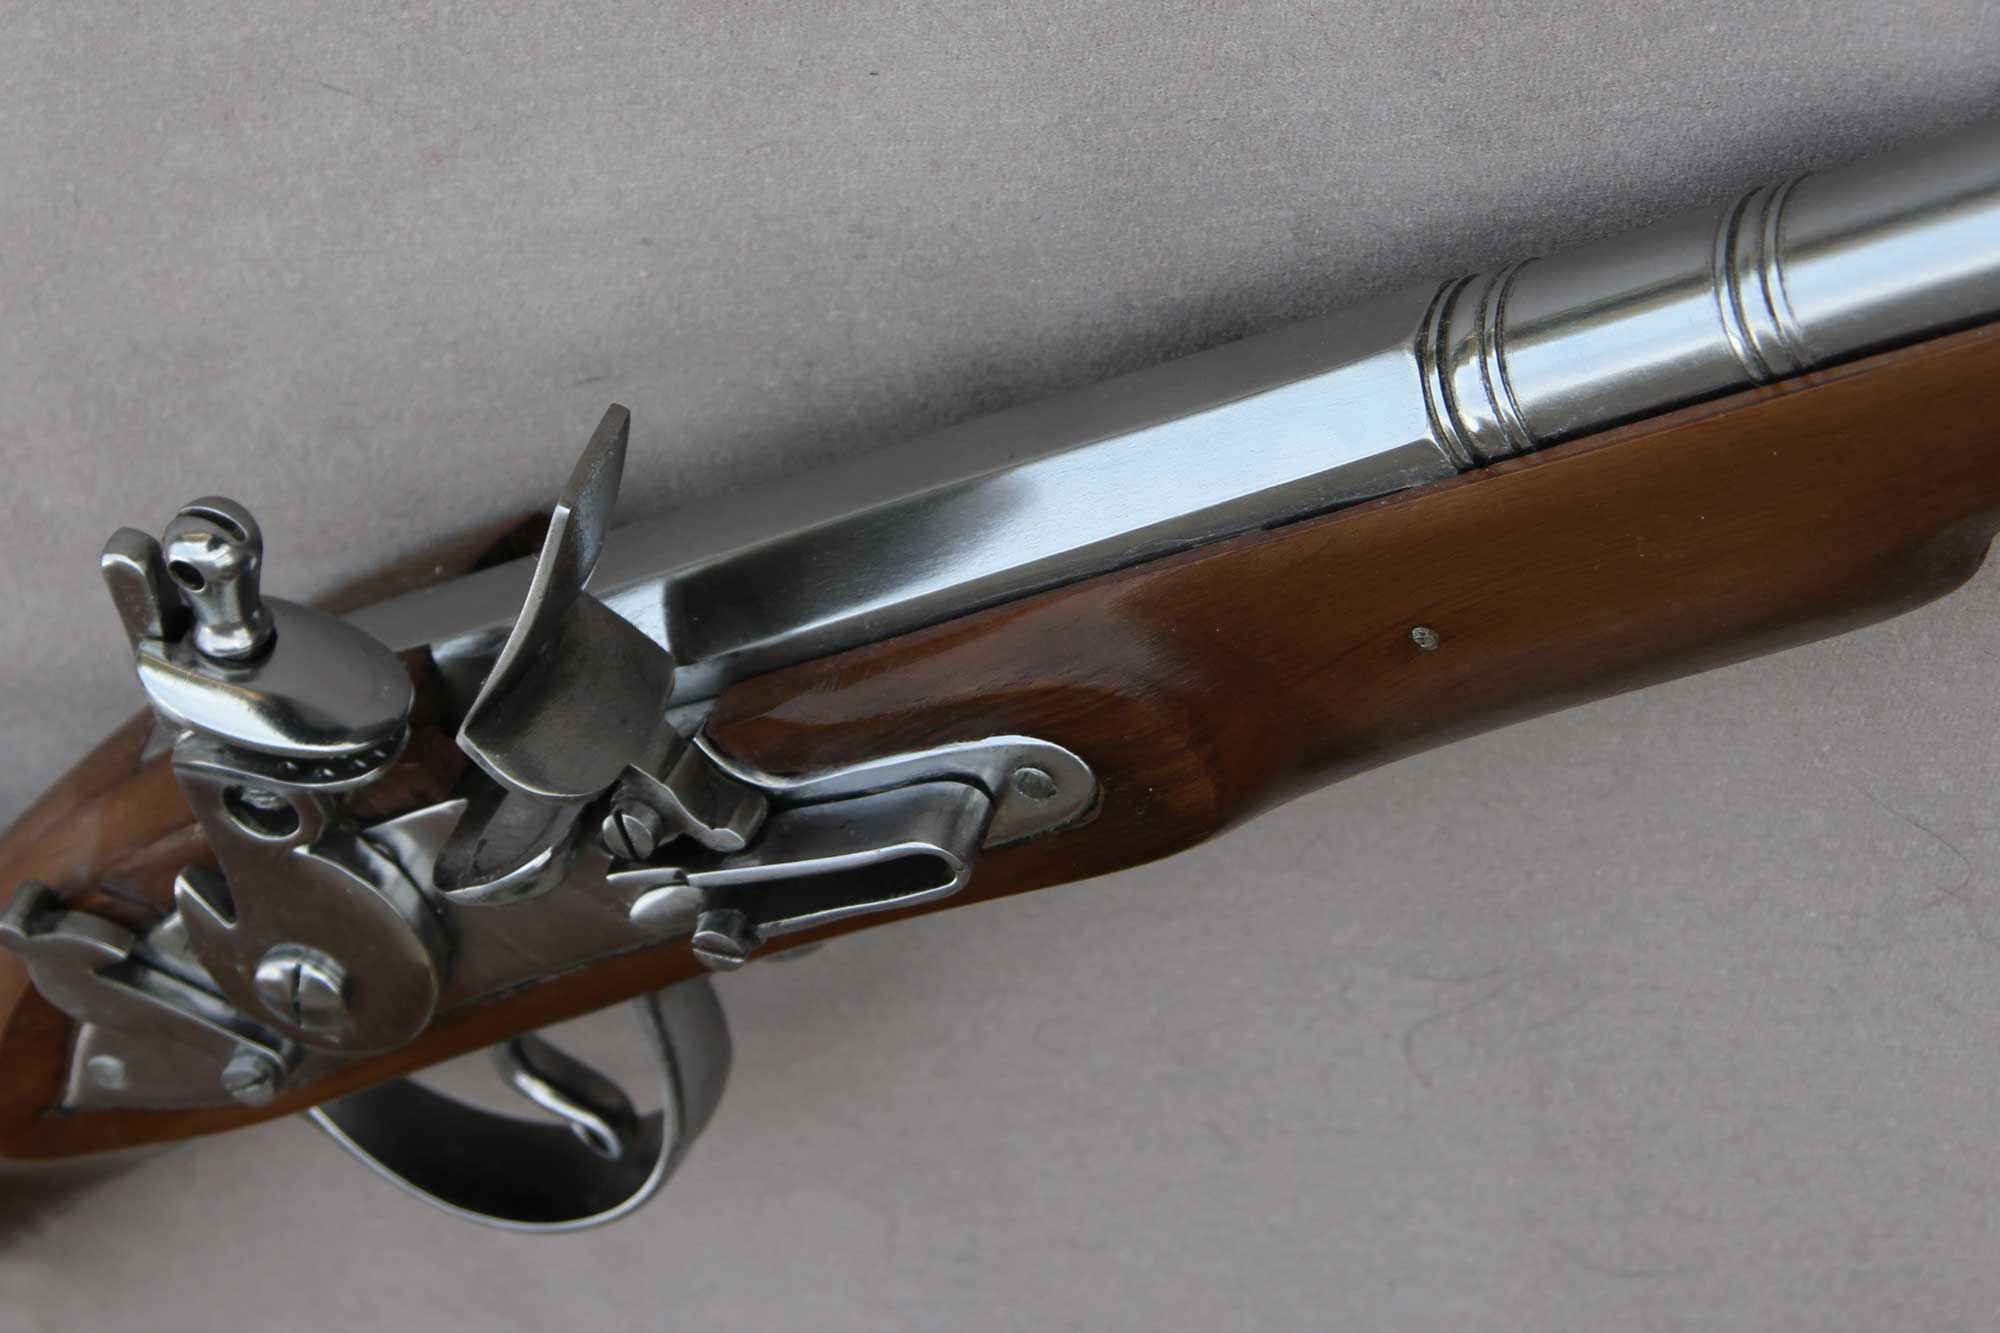 Dog lock blunderbuss